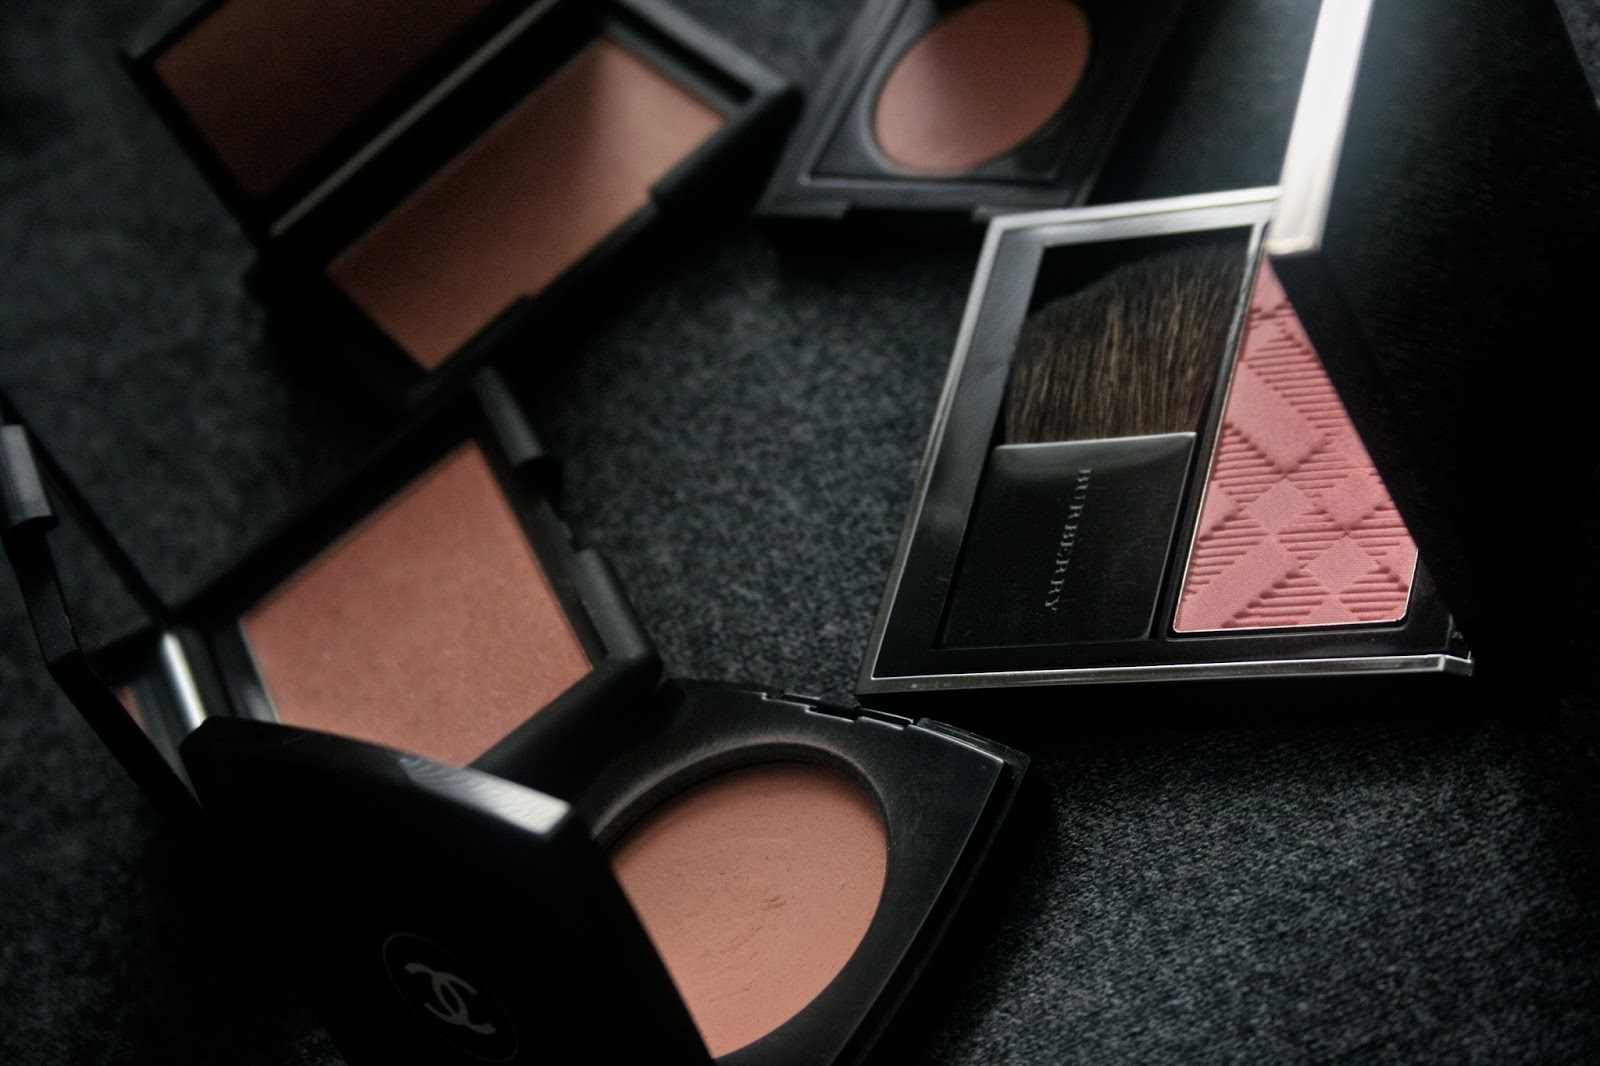 Favorite Blushes for Fall 2014 for medium dark skintones from burberry, laura mercier, nars and chanel